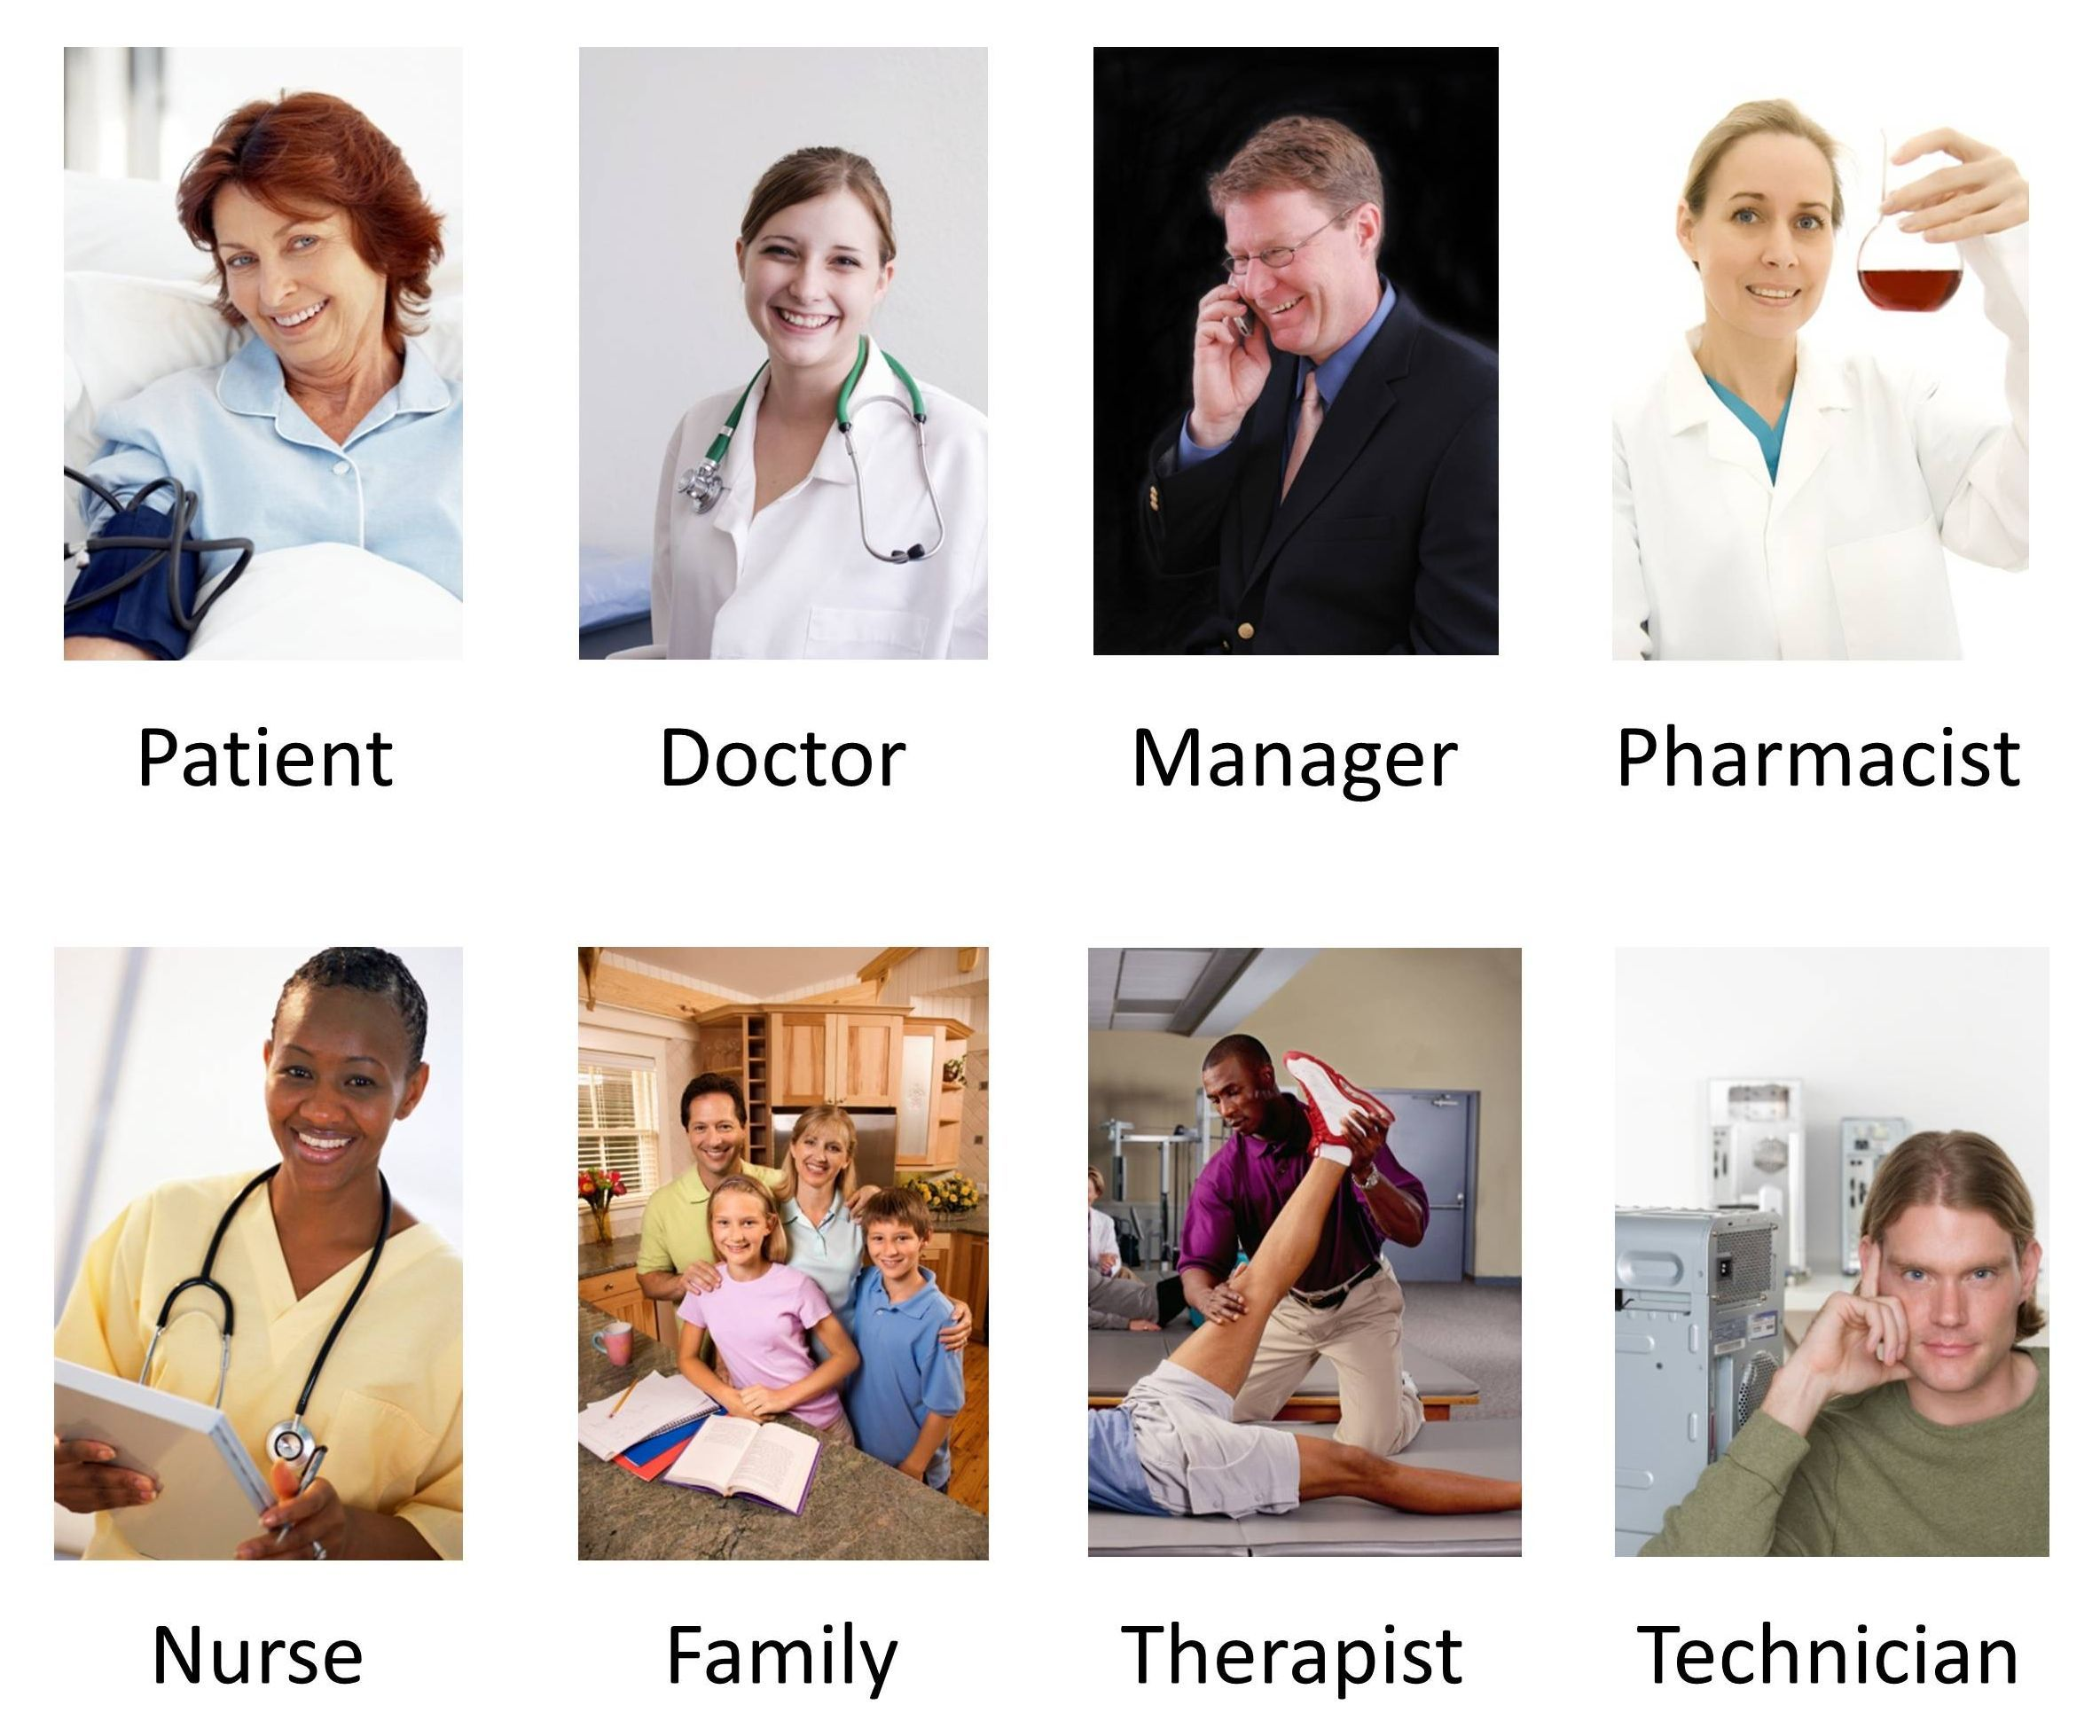 Examples of stakeholders include: patient, doctor, manager, pharmacist, nurse, family, therapist, technician